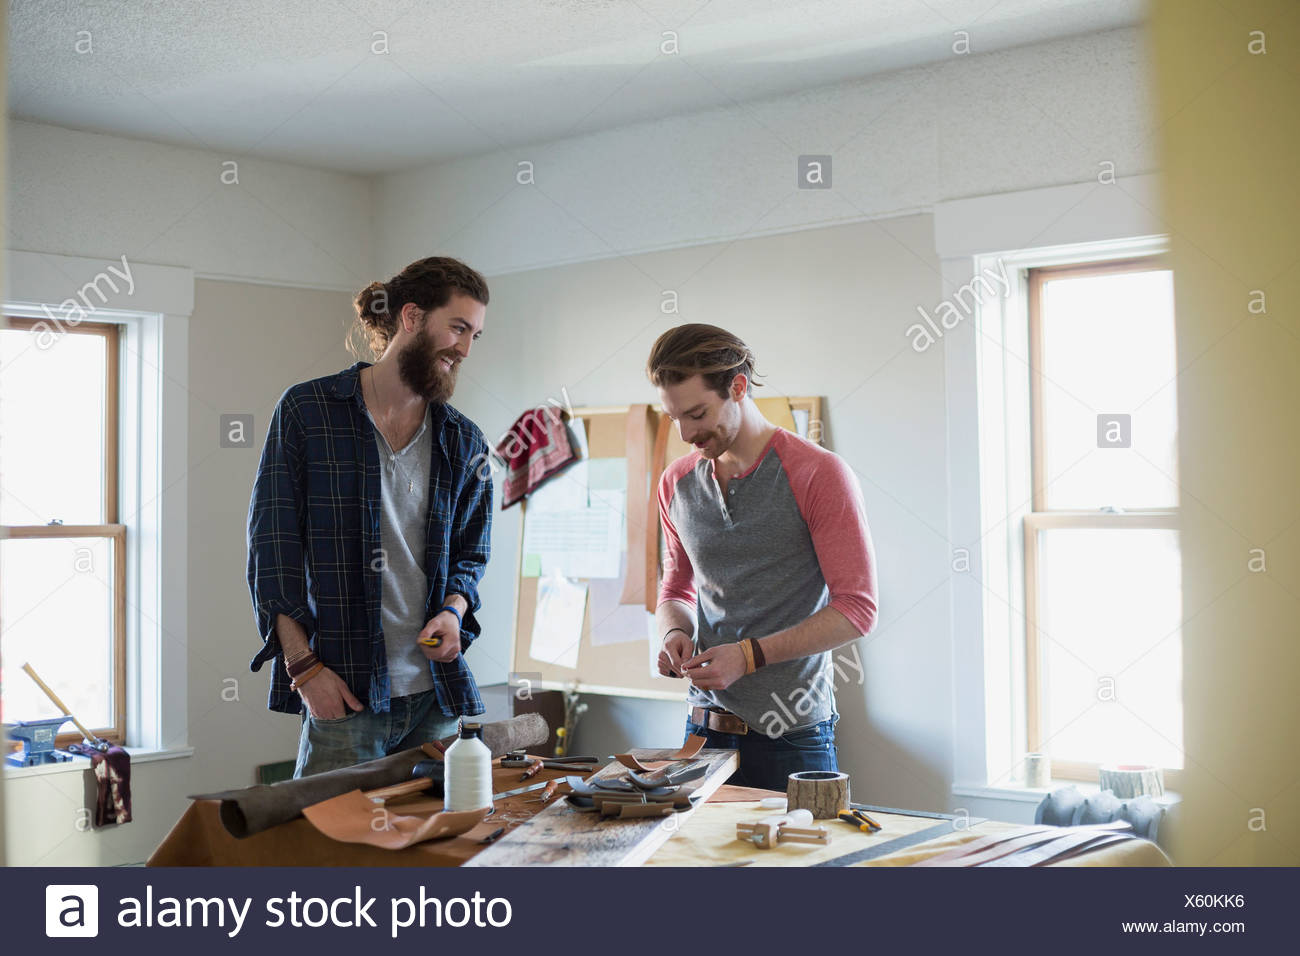 Young men making belts with equipment on table - Stock Image